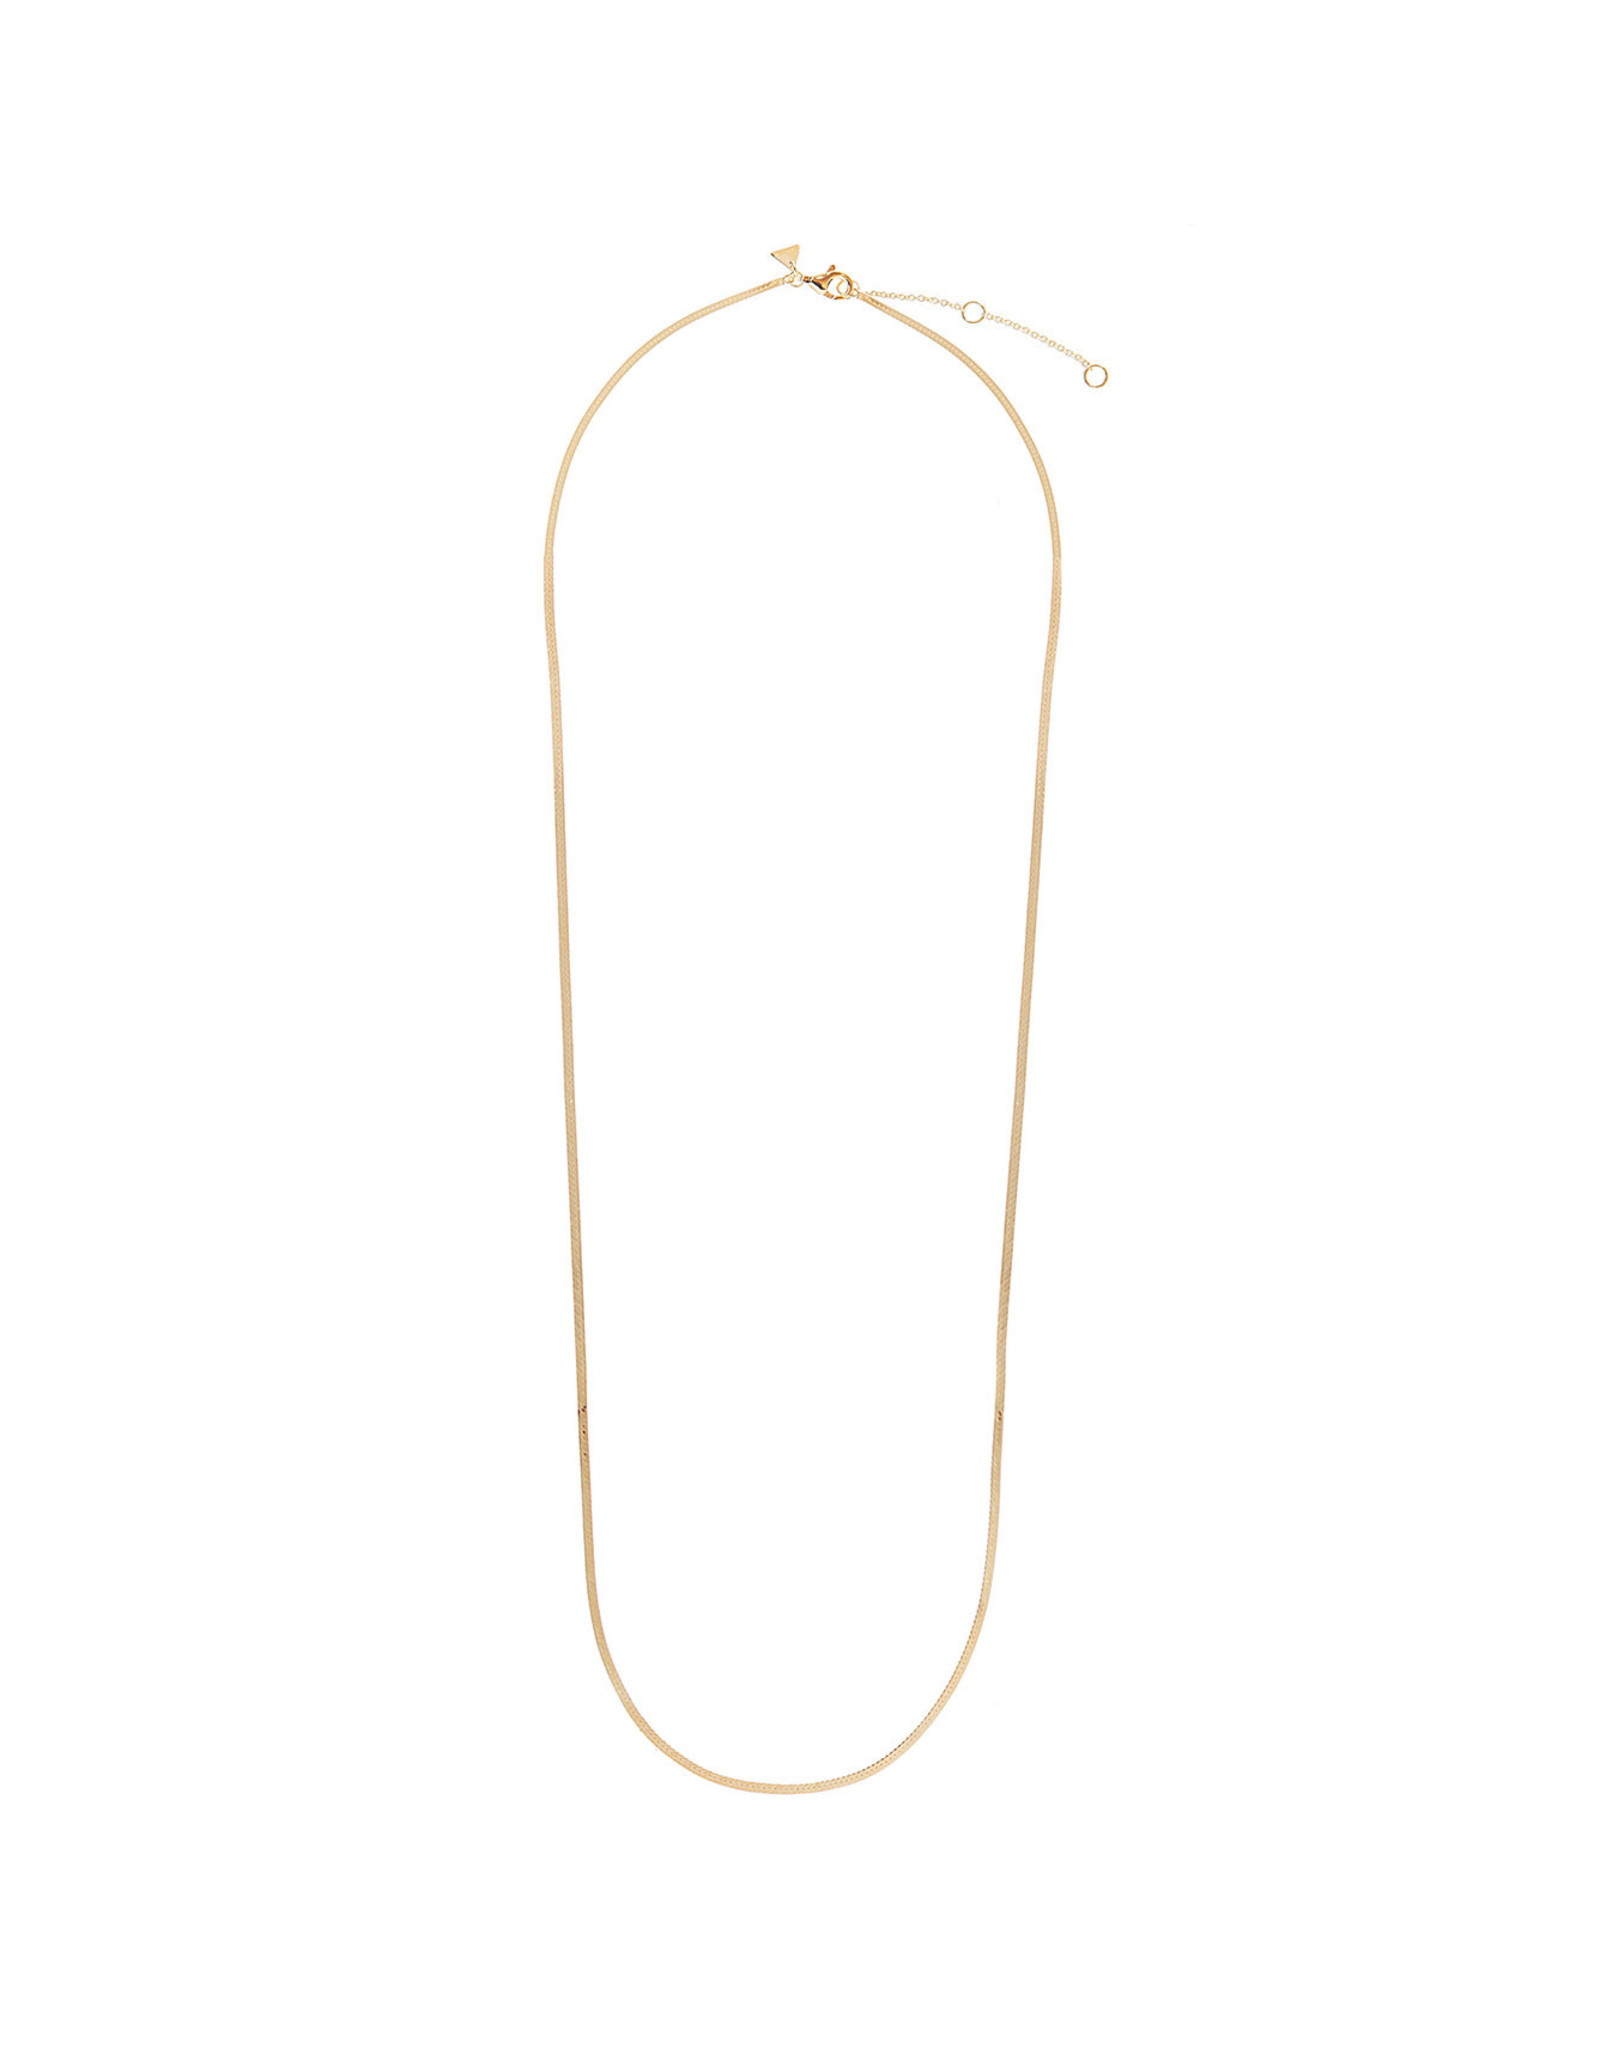 NECKLACE ROMEE SNAKE CHAIN 51 CM GOLD